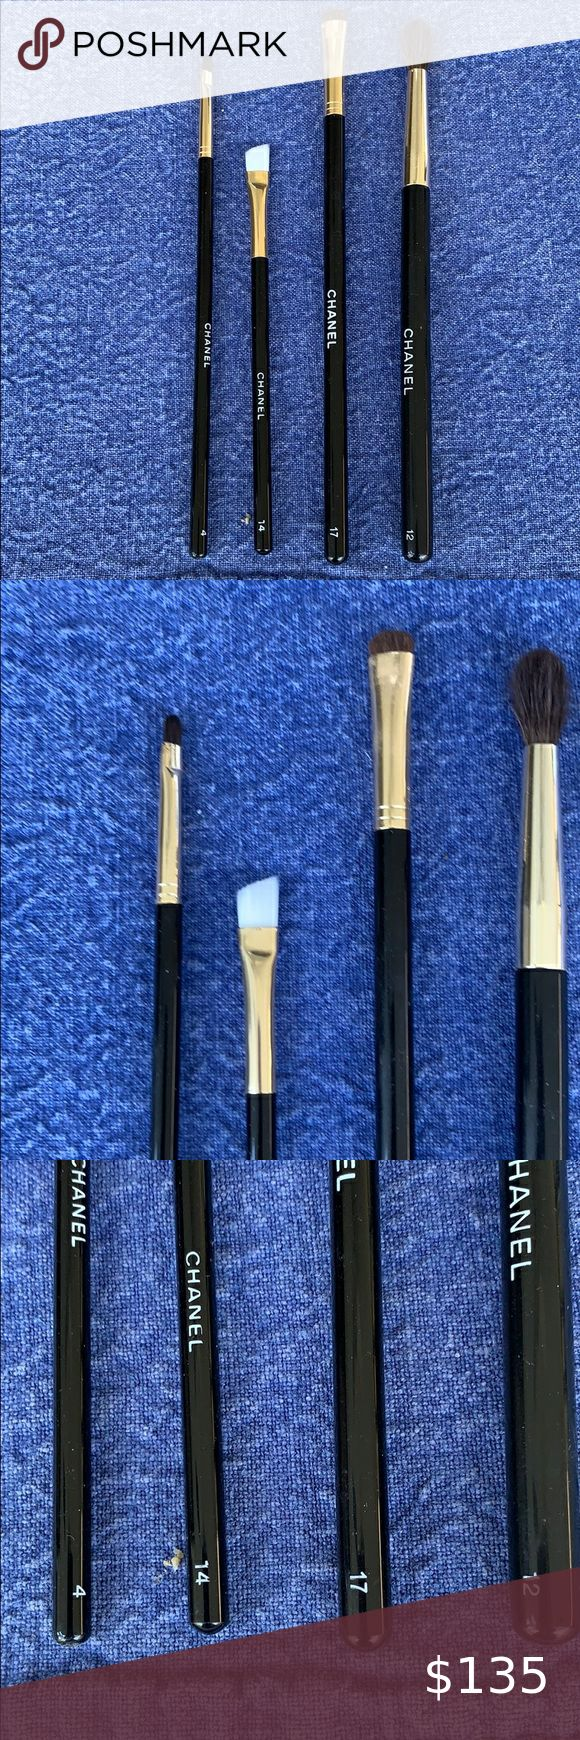 CHANEL beautiful set of 4 make up brushes in 2020 Makeup